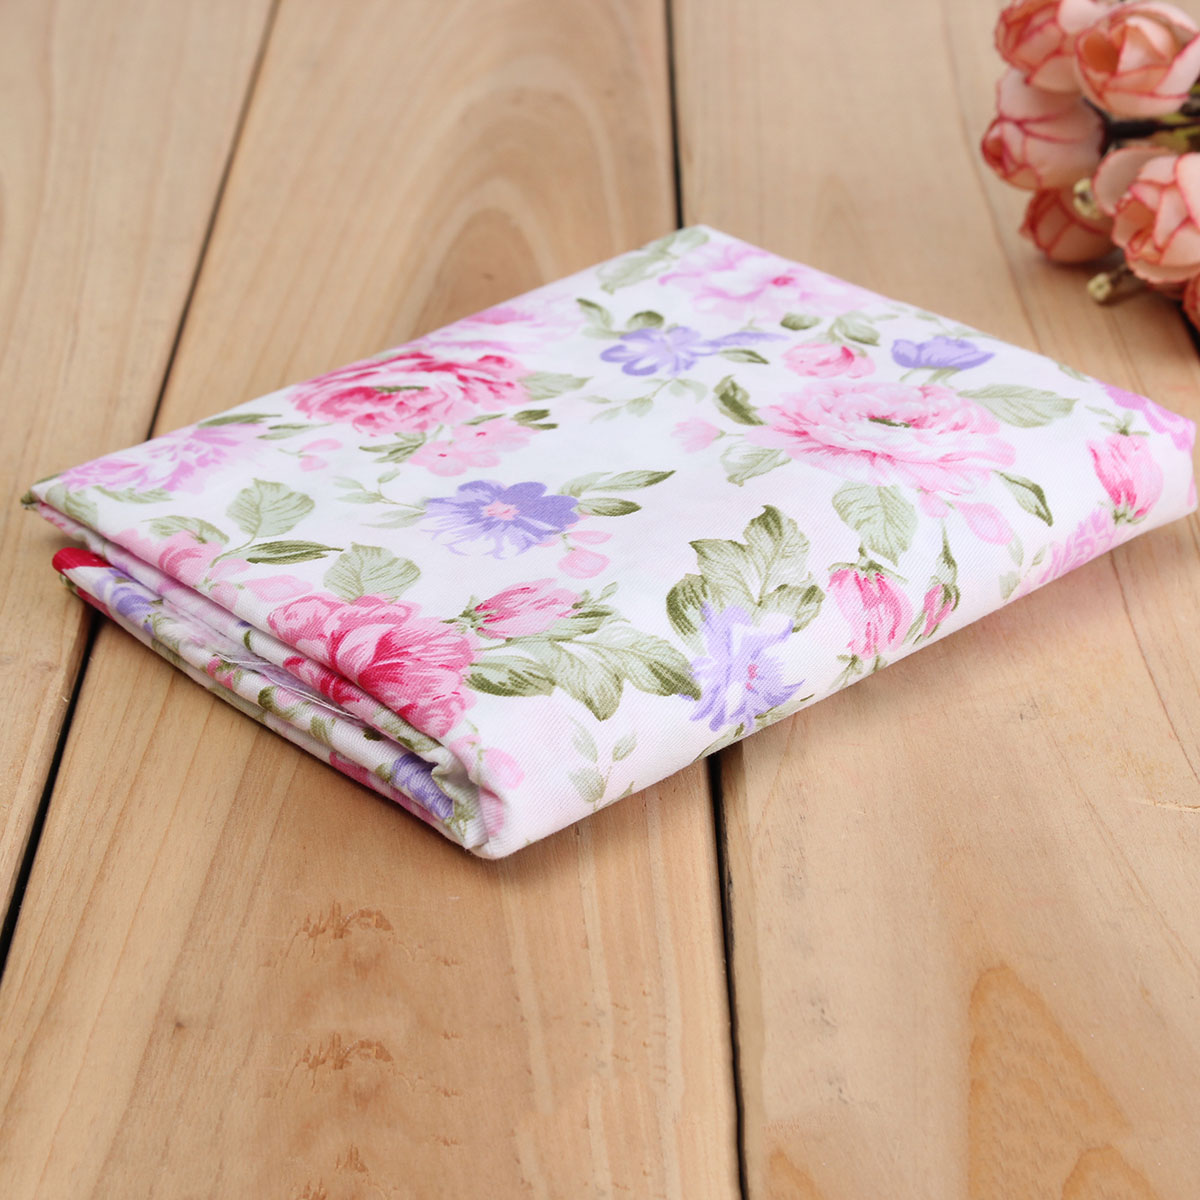 150x50cm Cotton Pink Rose Flower Sewing Fabric Dolls Purse Handwork DIY Patchwork Cloths